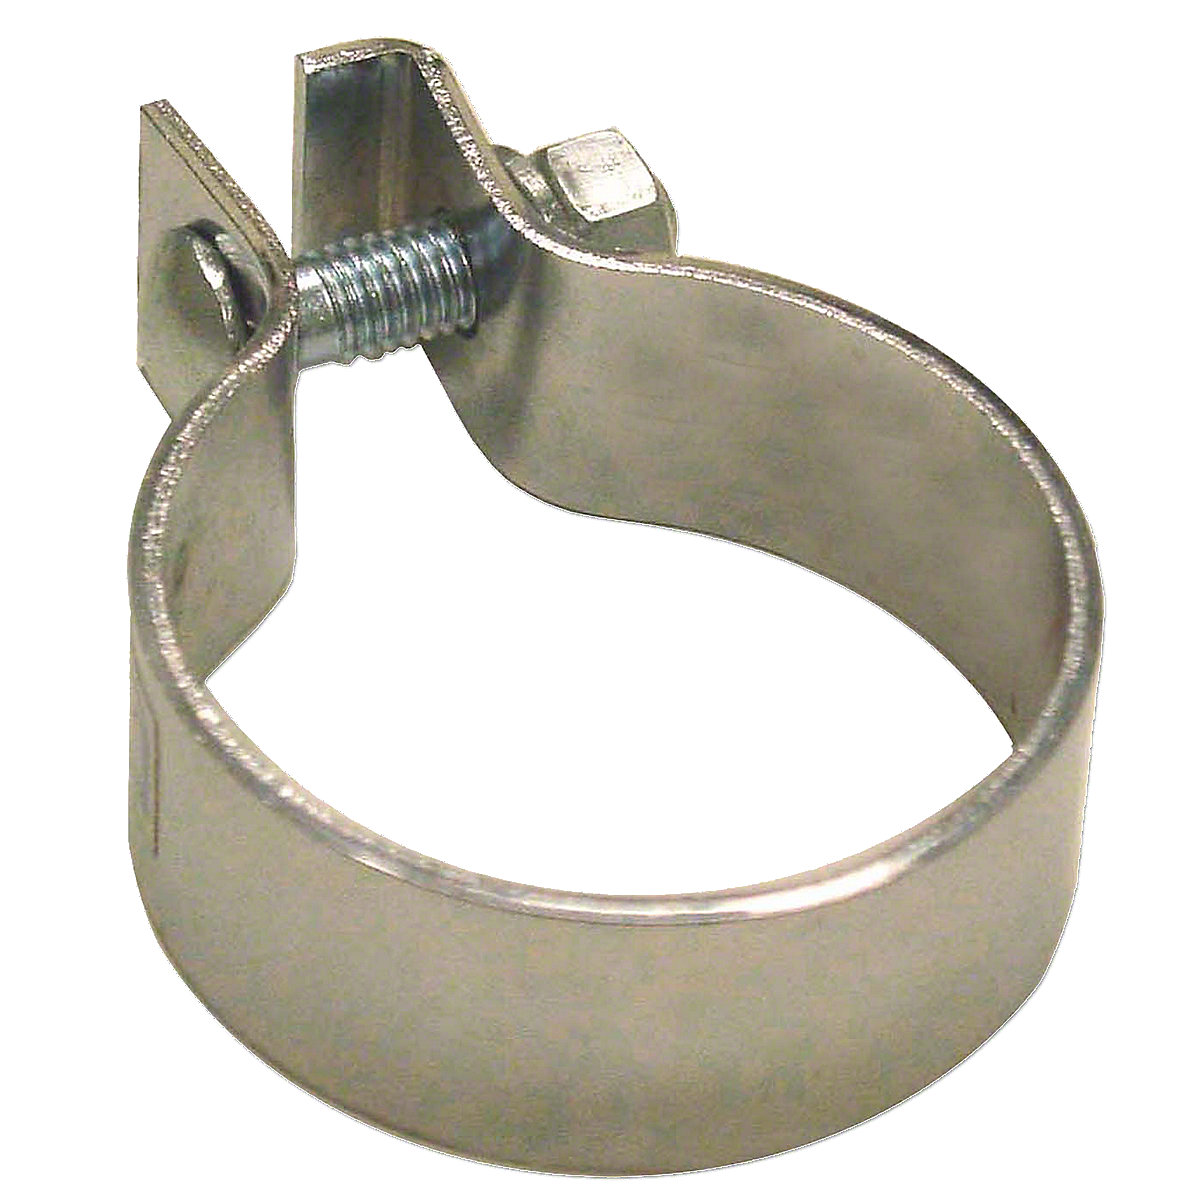 ABC351 Chrome Muffler Clamp